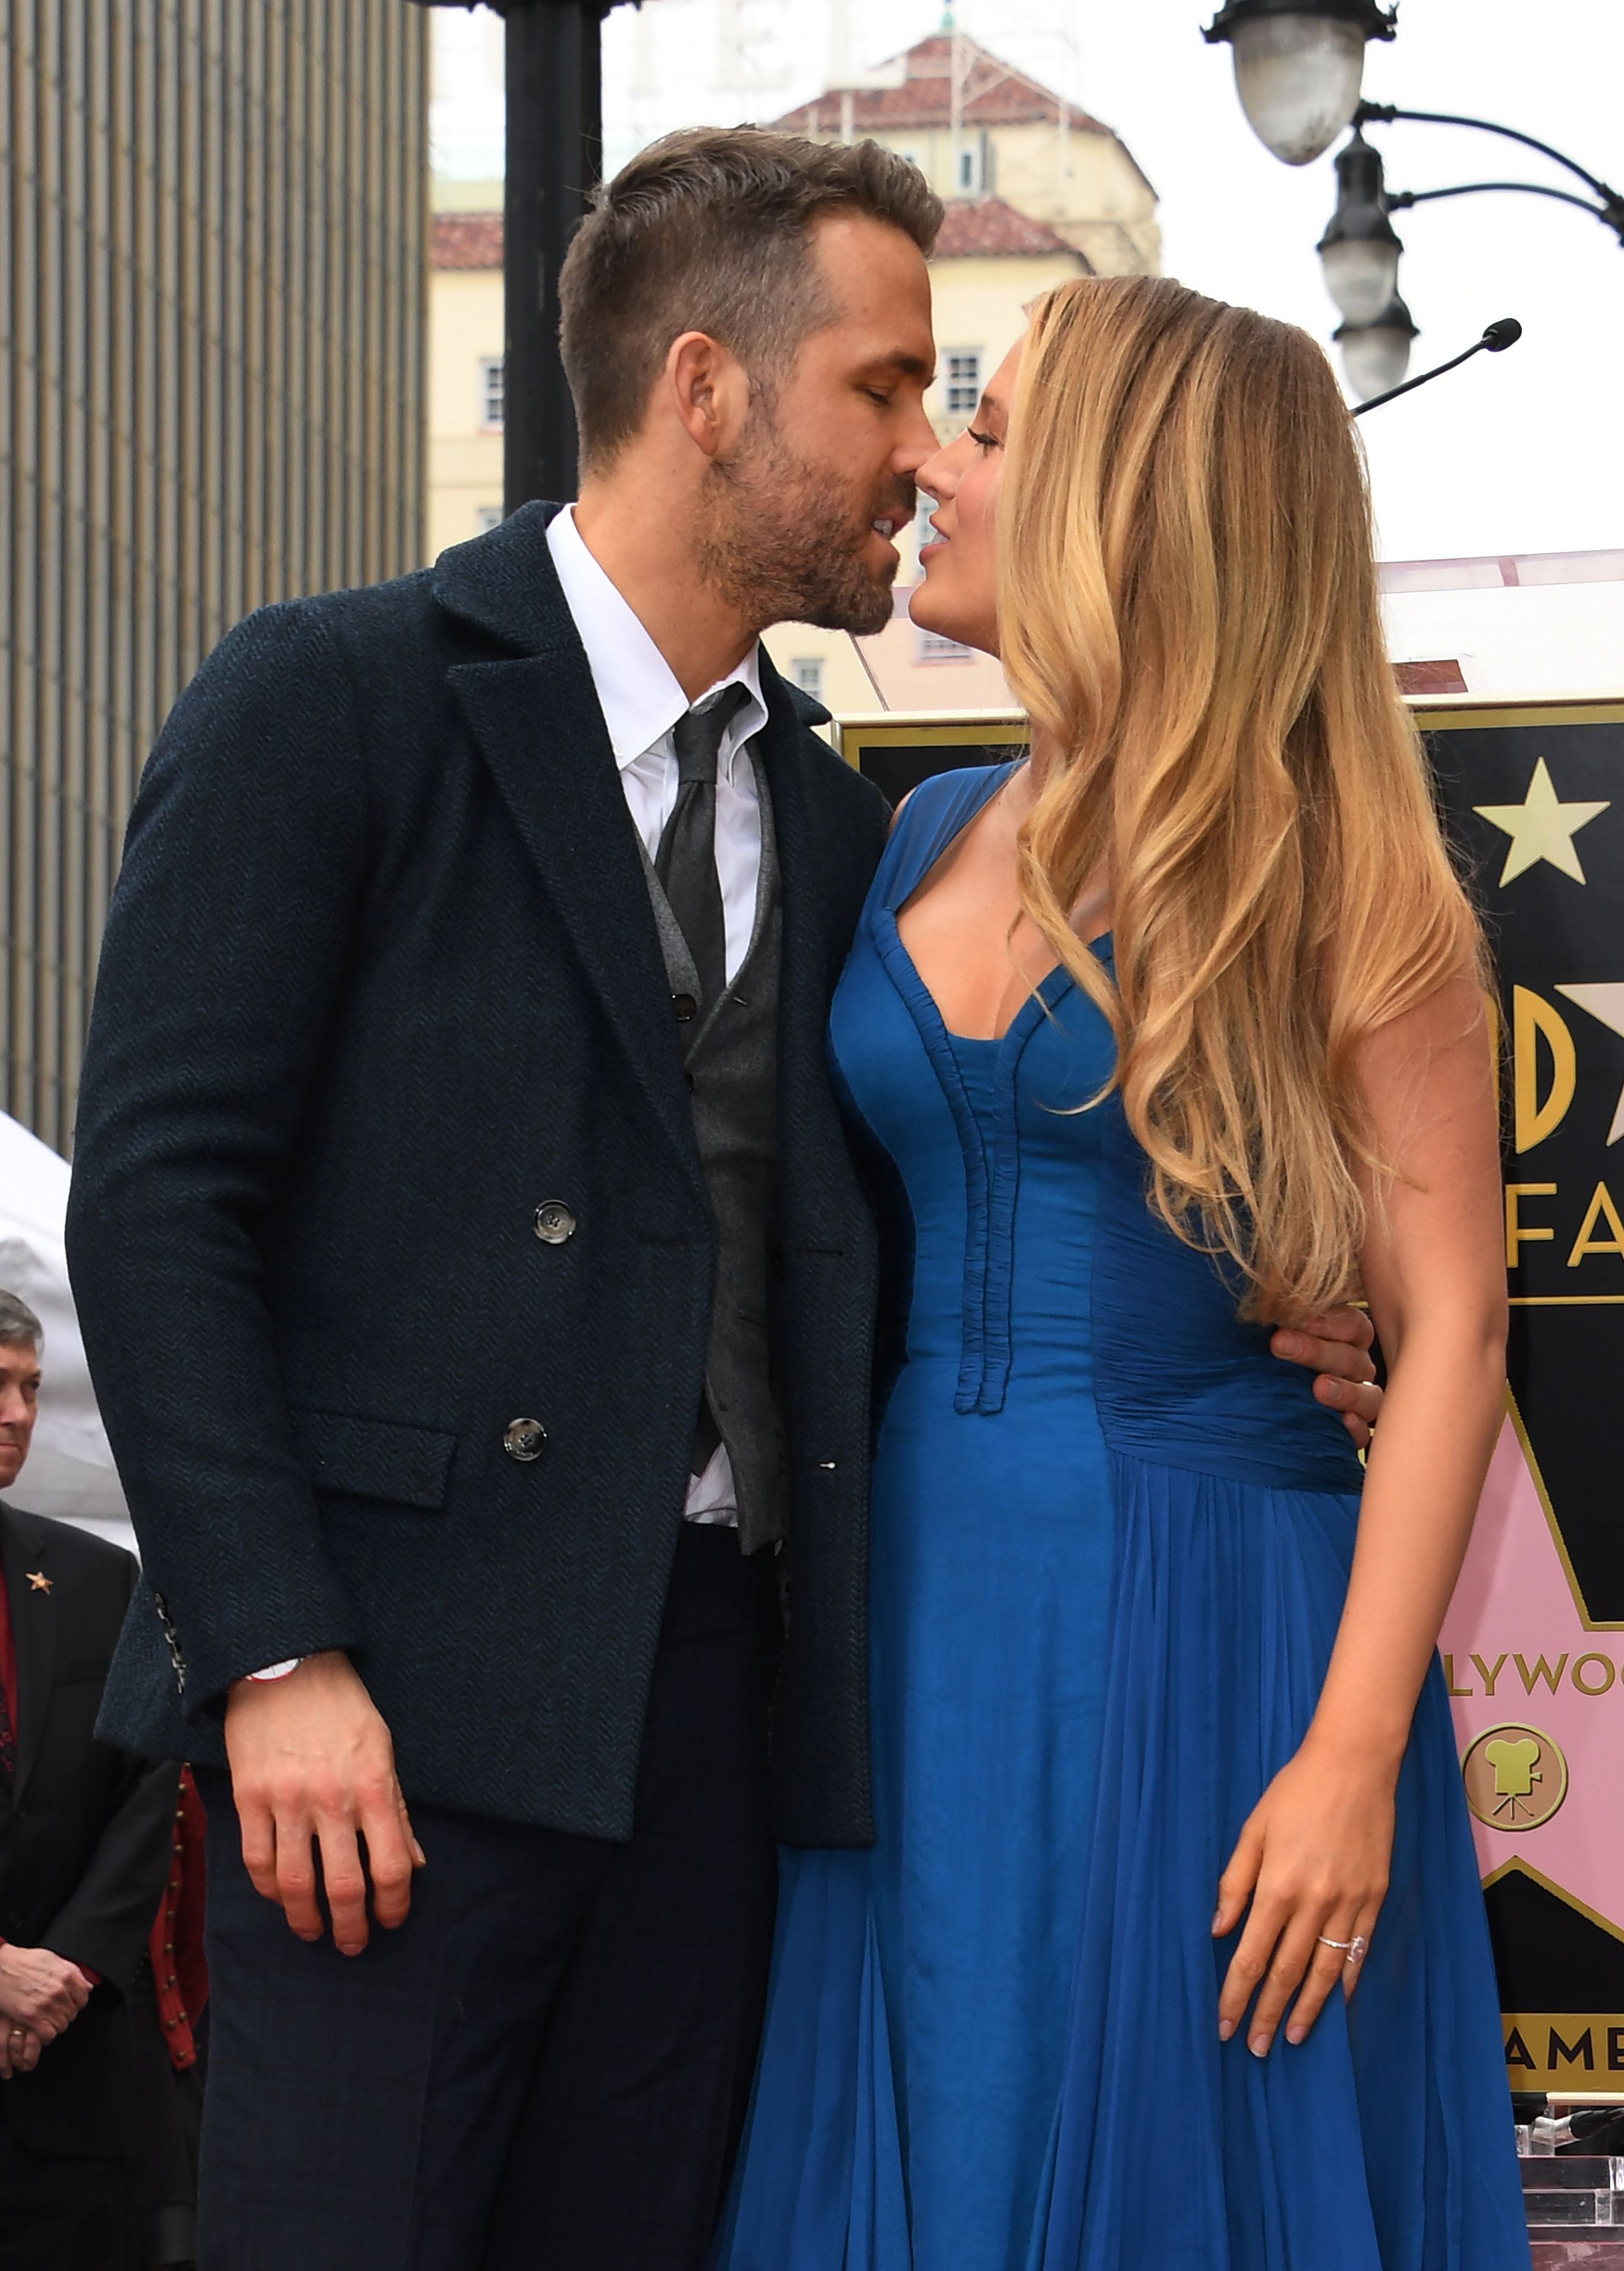 Ryan Reynolds gives fans first glimpse of newborn baby with wife Blake Lively